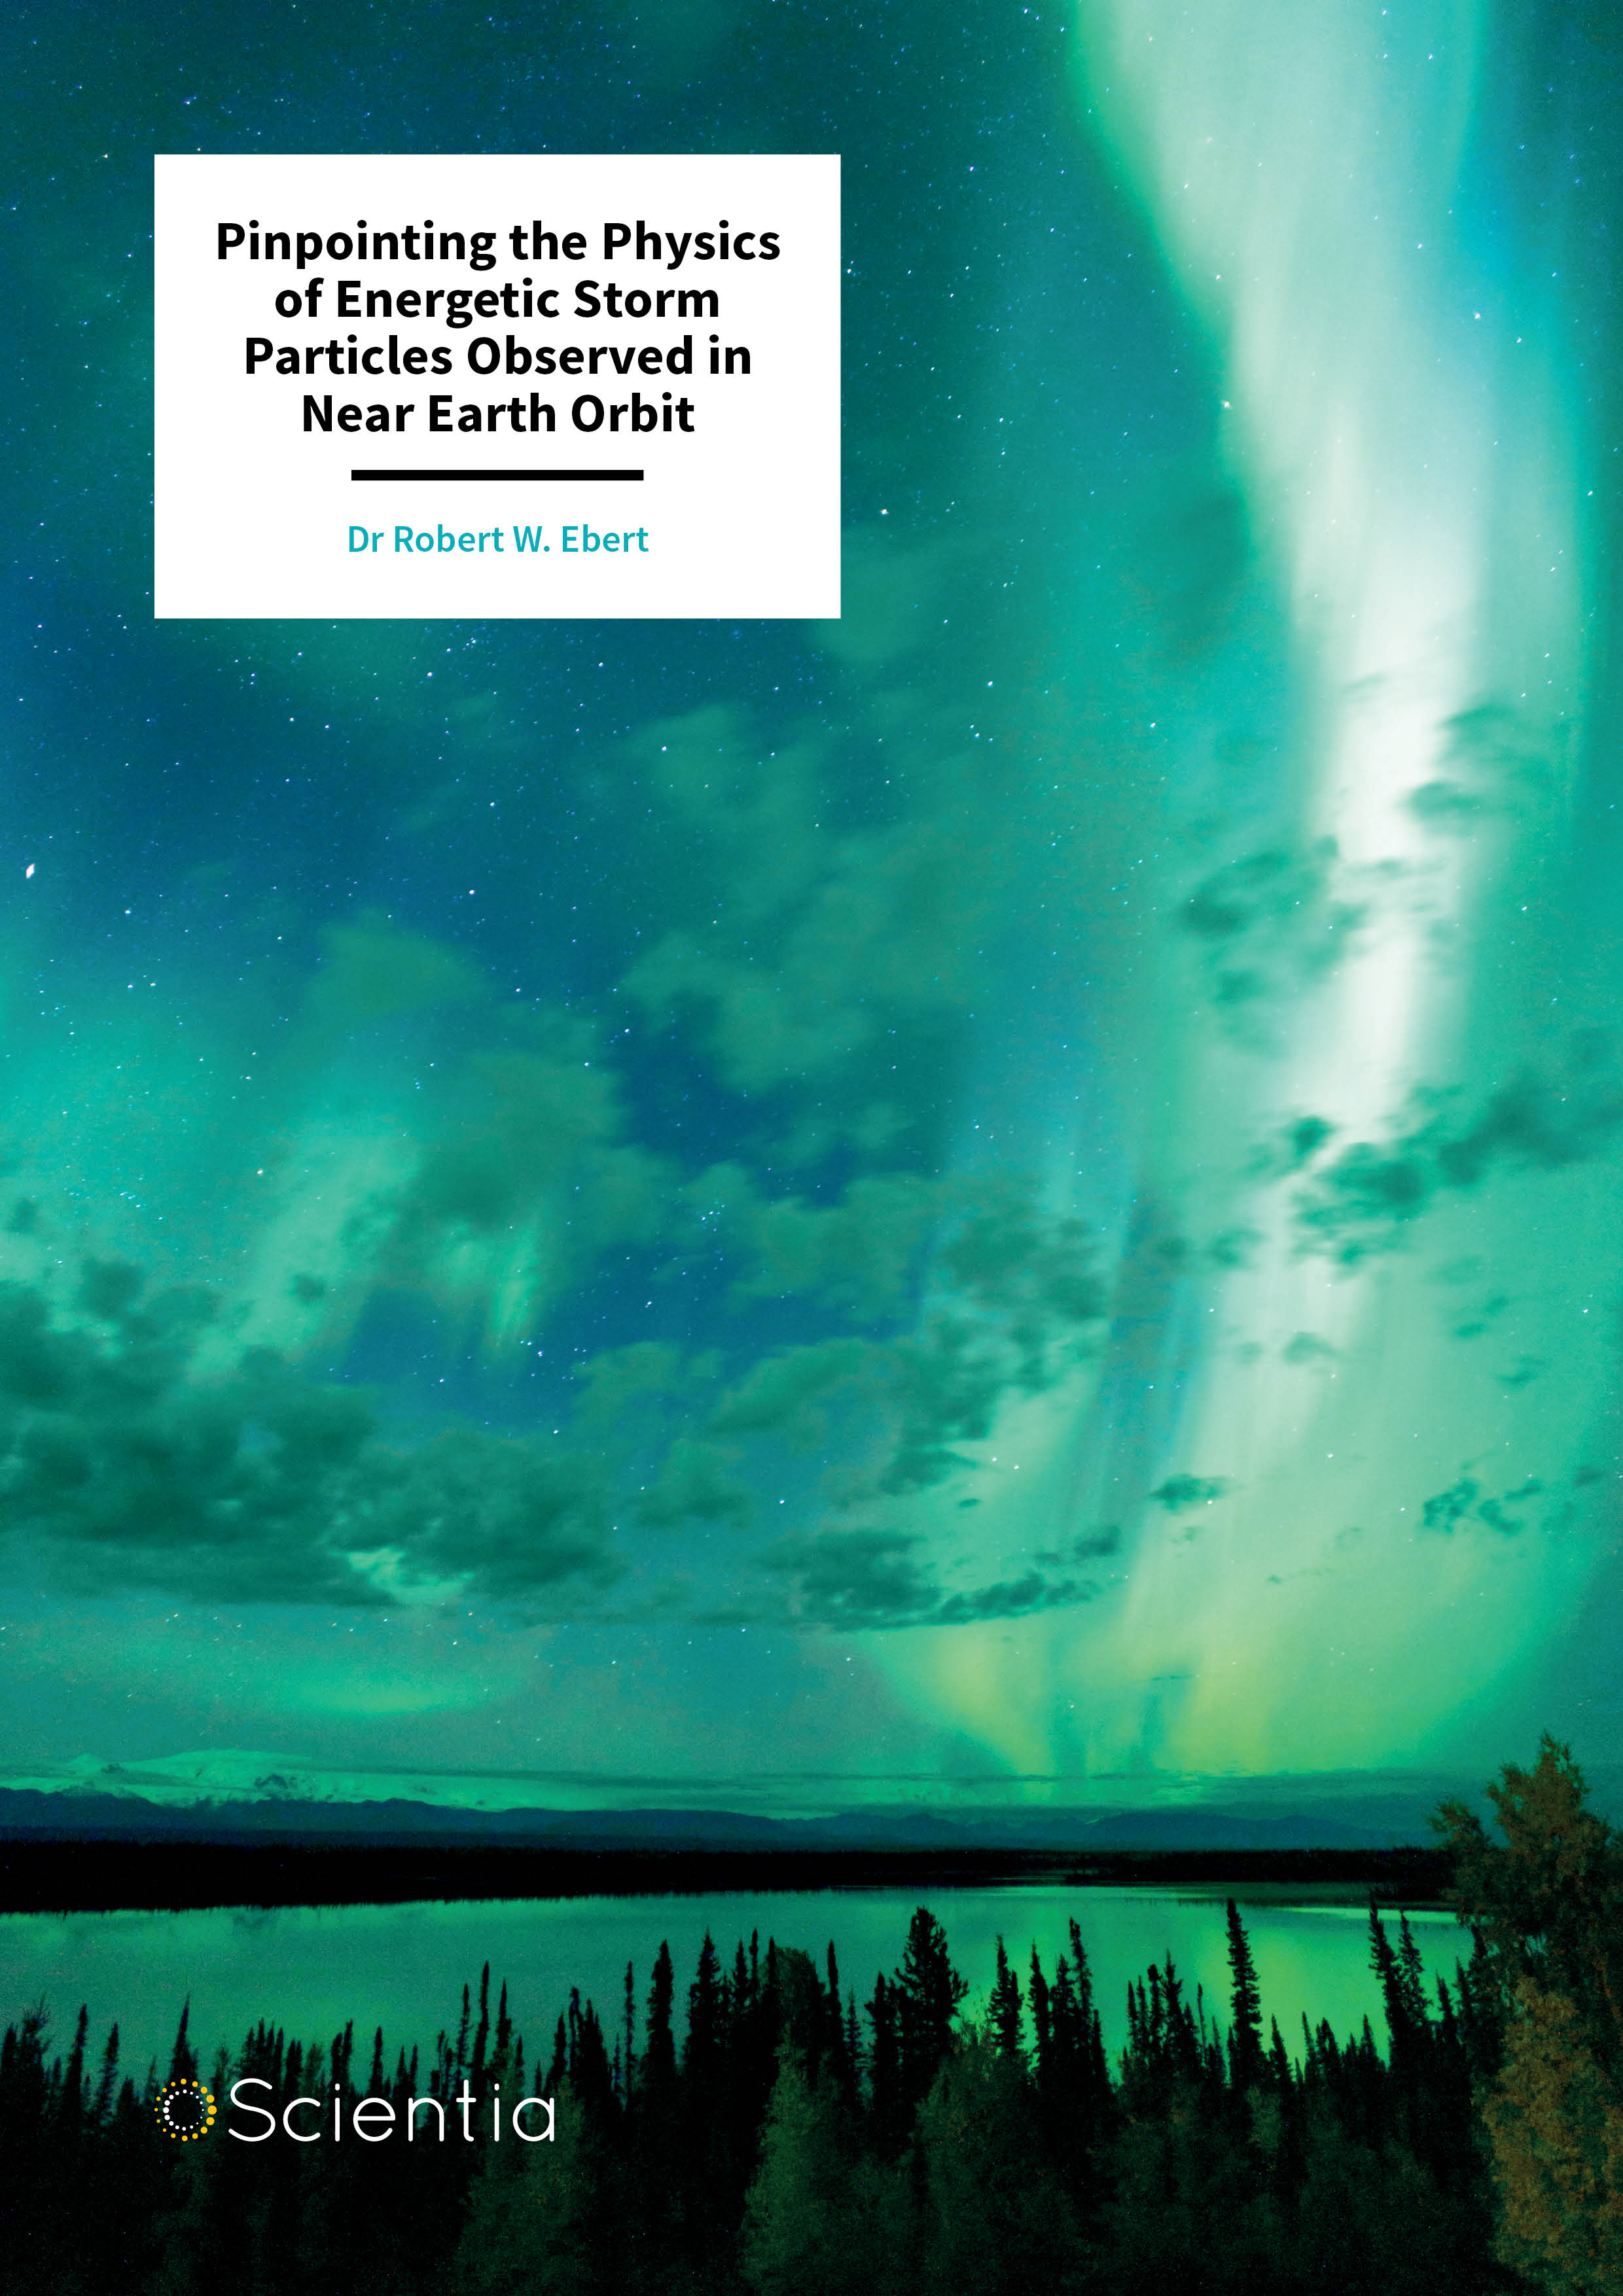 Dr Robert Ebert – Pinpointing the Physics of Energetic Storm Particles Observed in Near Earth Orbit